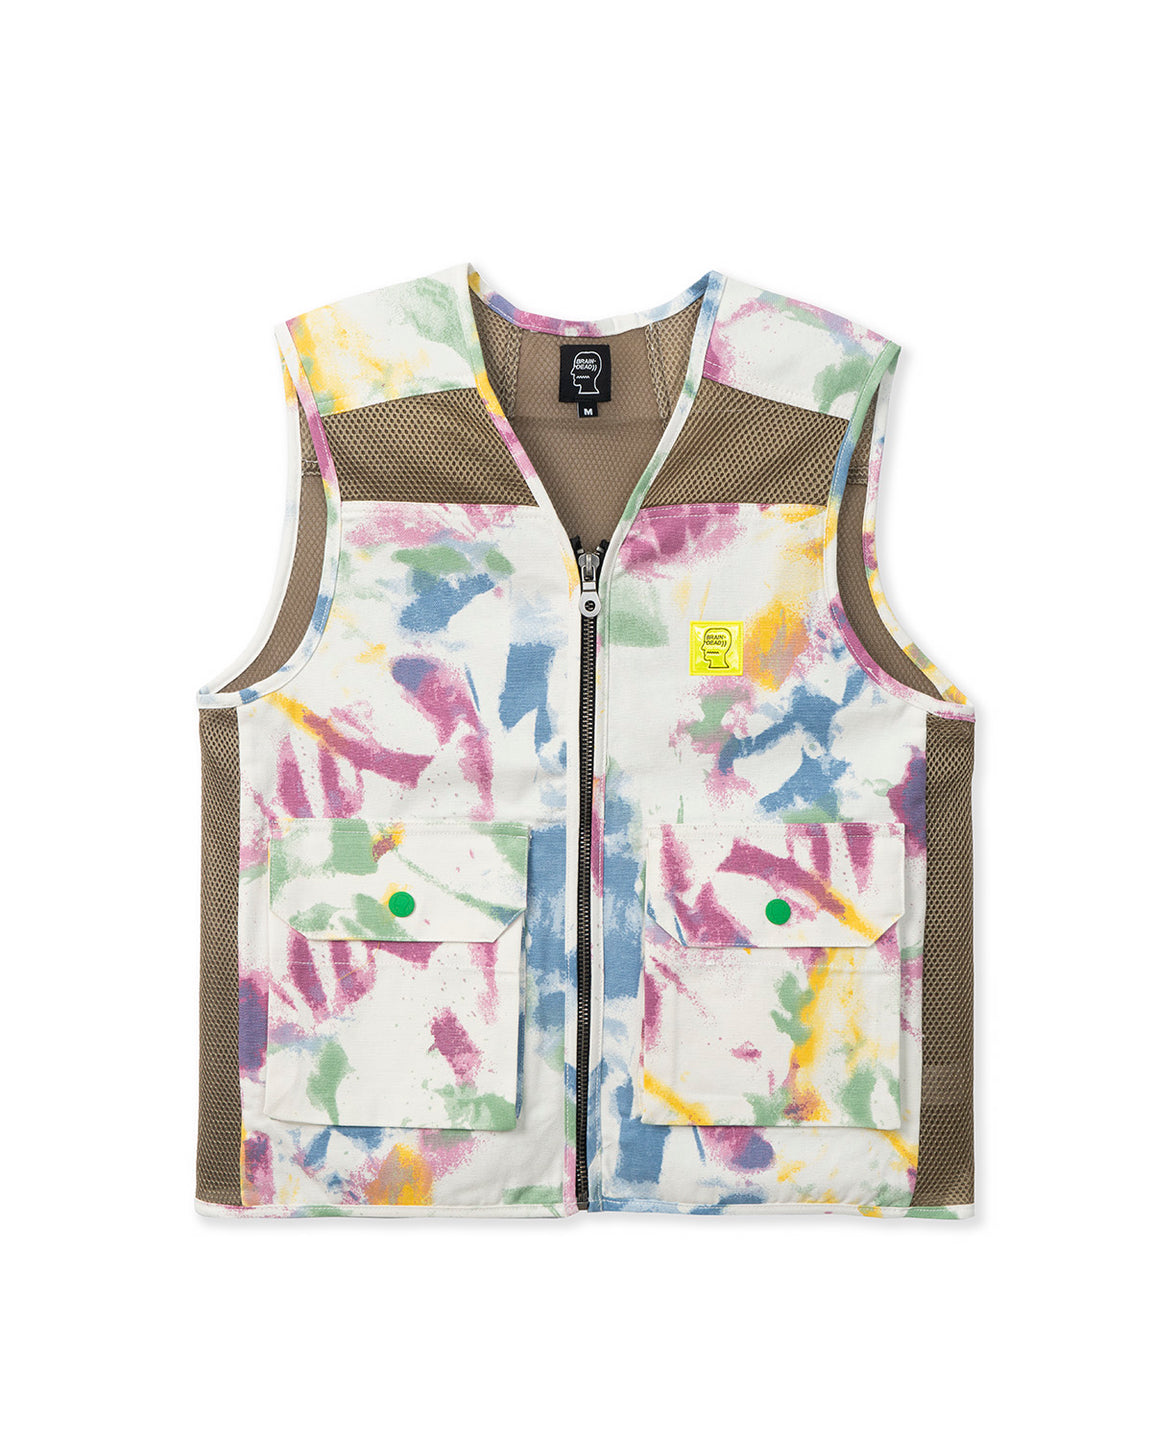 Dyed Canvas Spacer Mesh Tactical Vest - Dry Pigment Dye